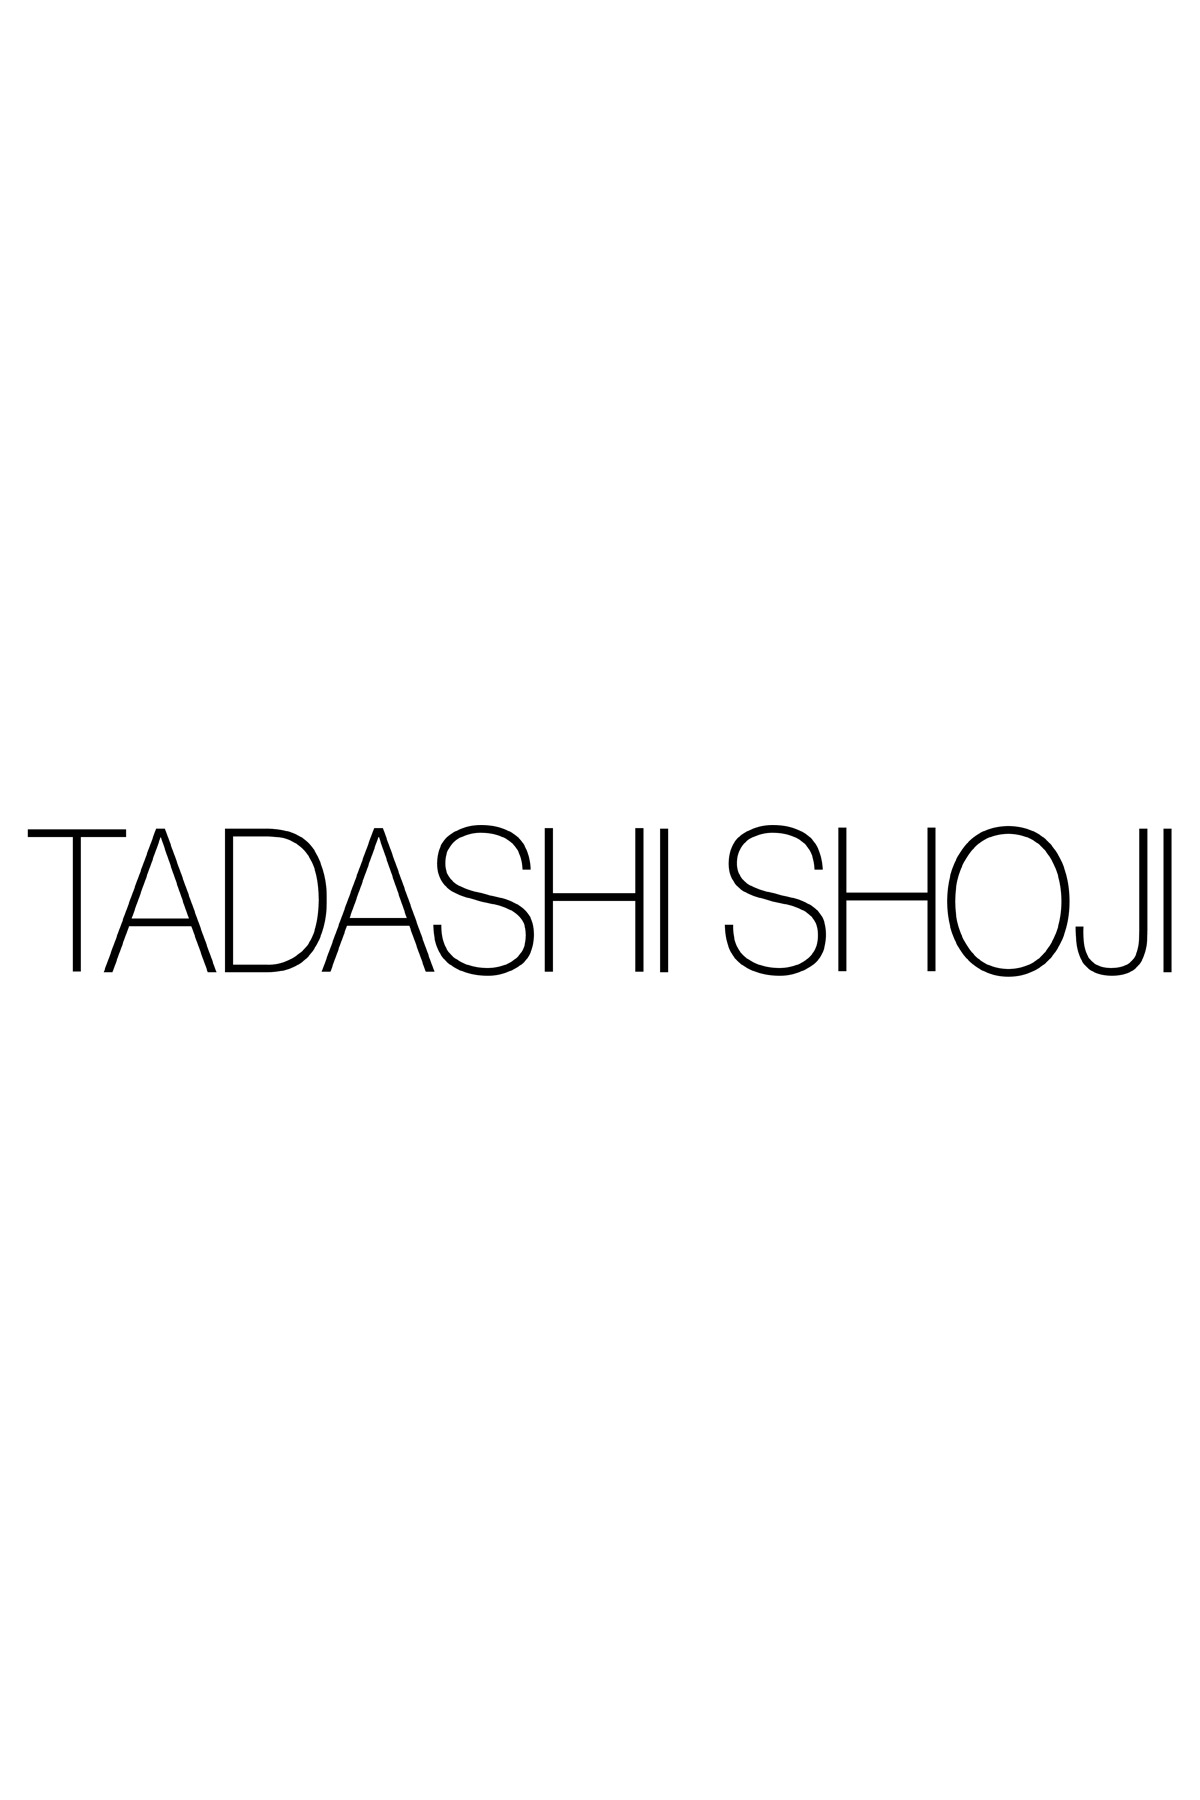 Tadashi Shoji - Izalie Embroidered Sequin Dress - PLUS SIZE